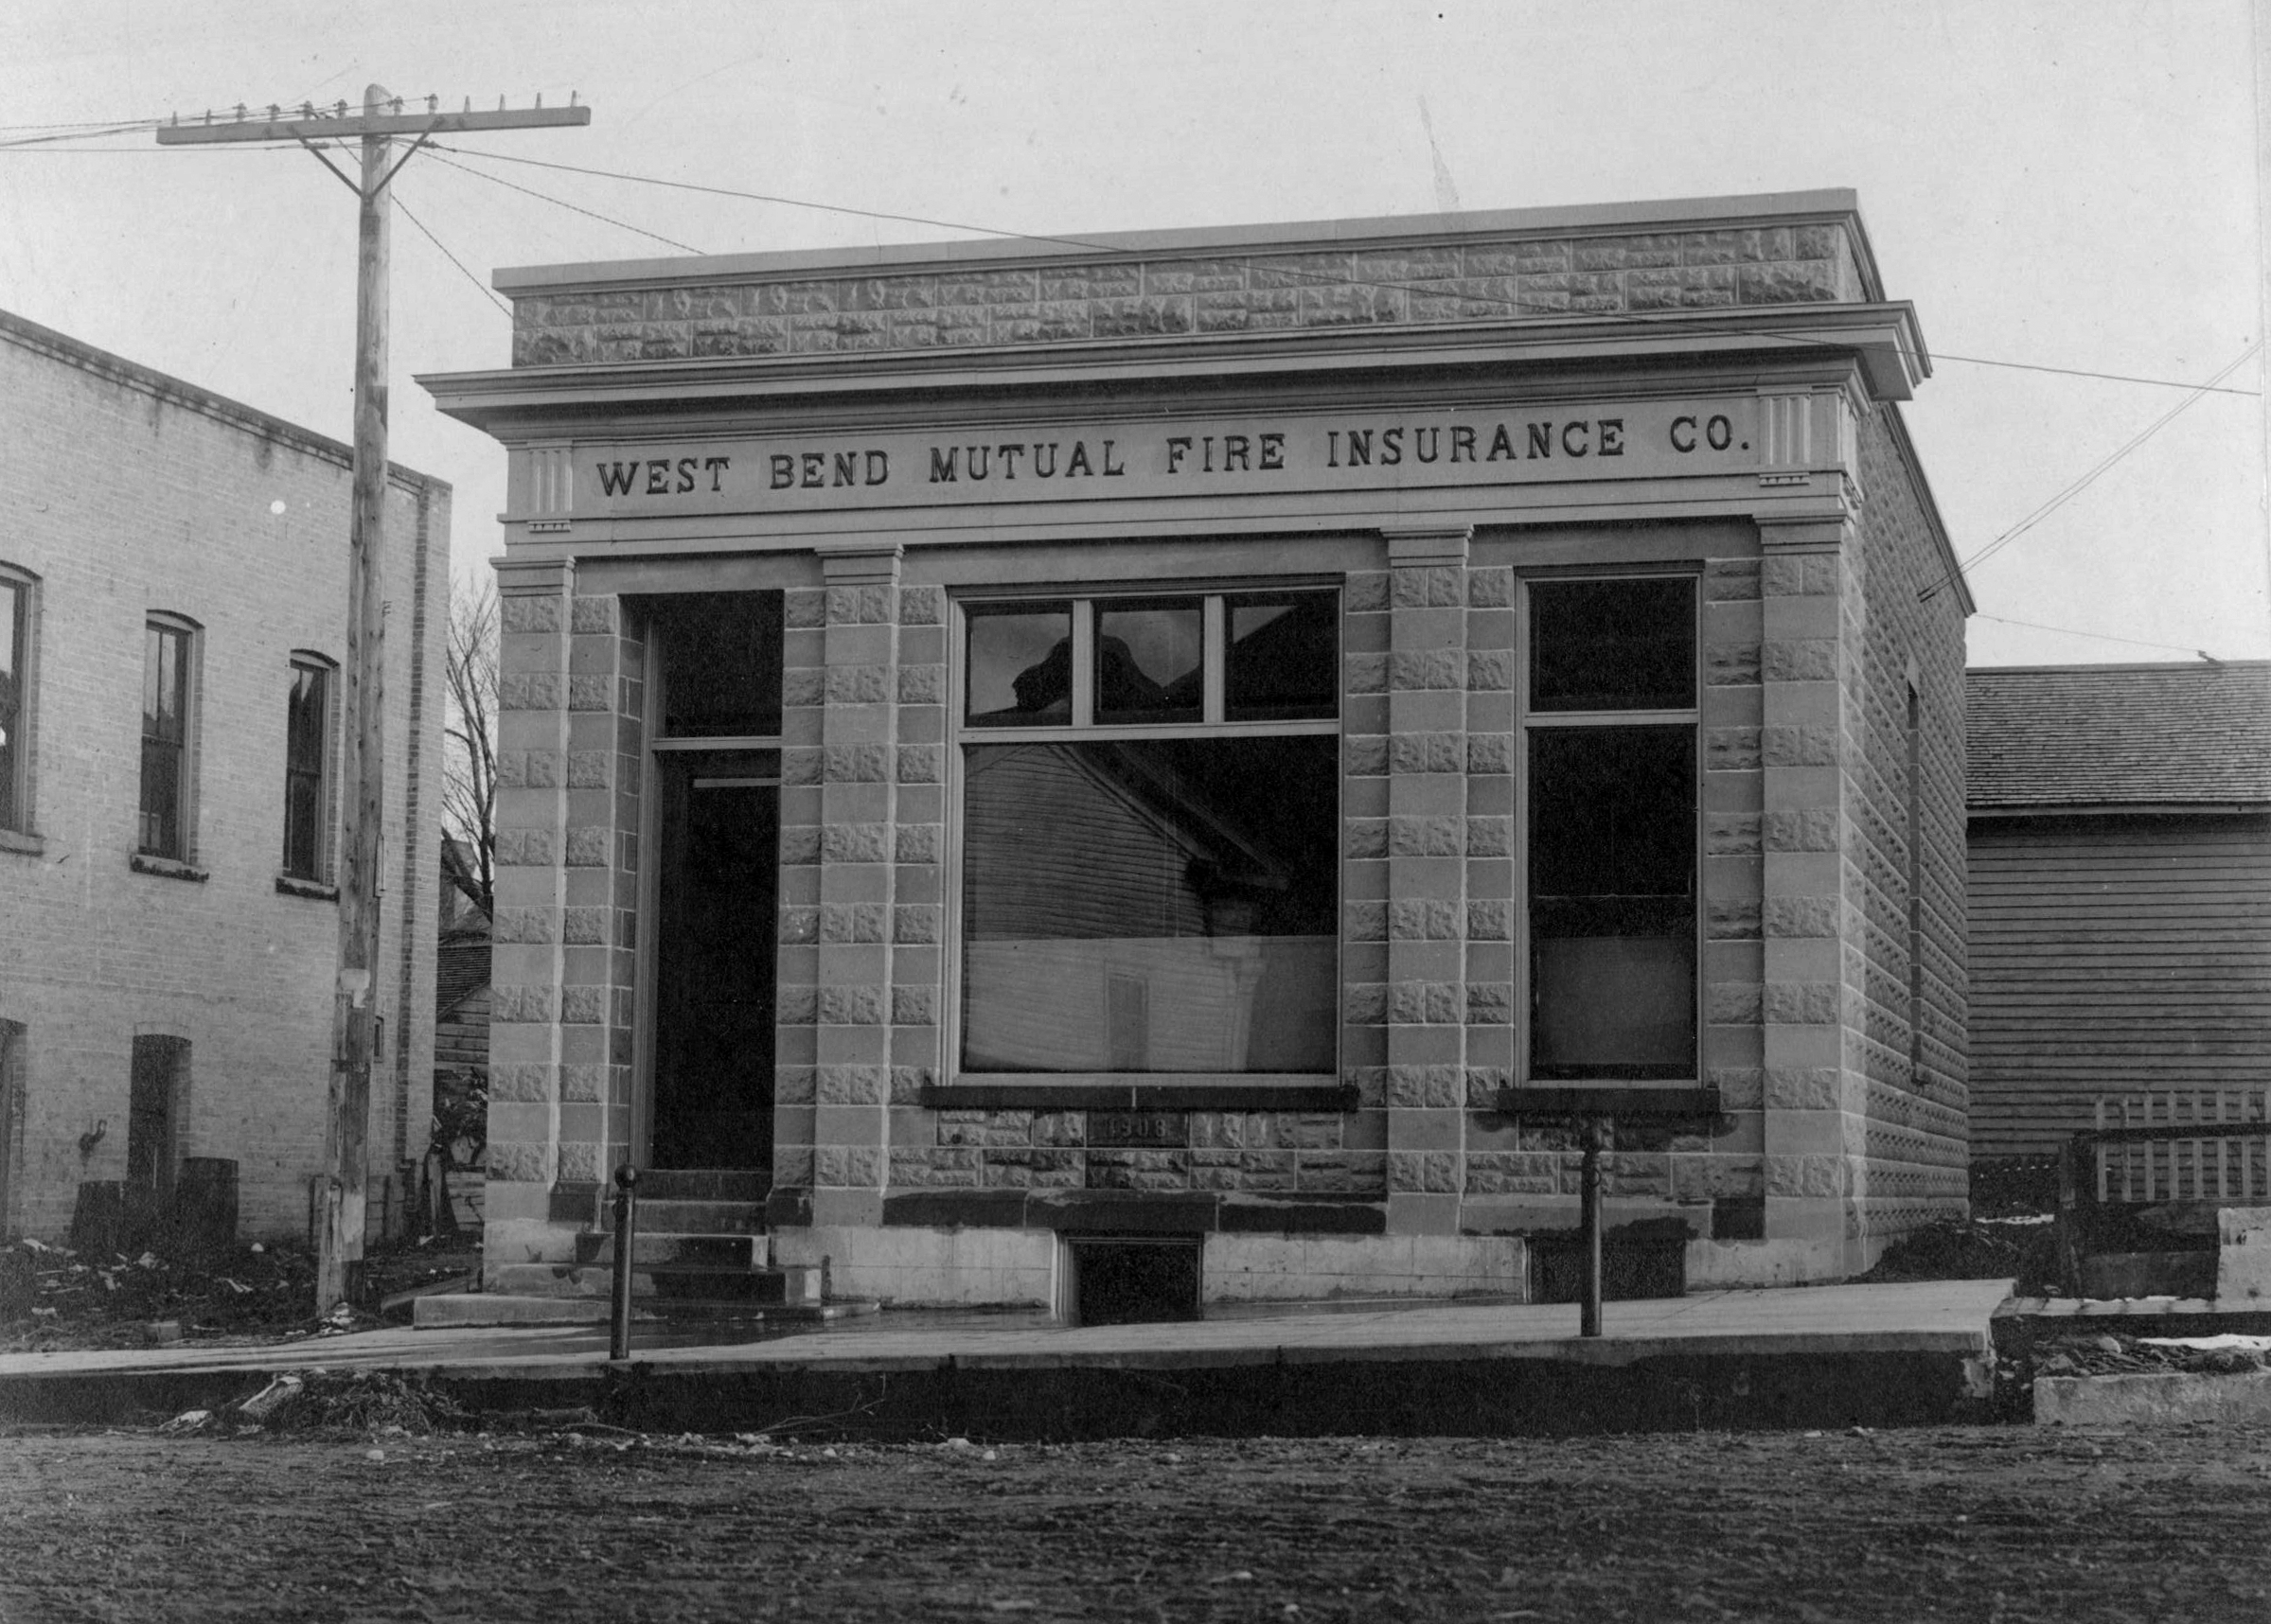 West Bend Mutual Insurance: 1894 - Present